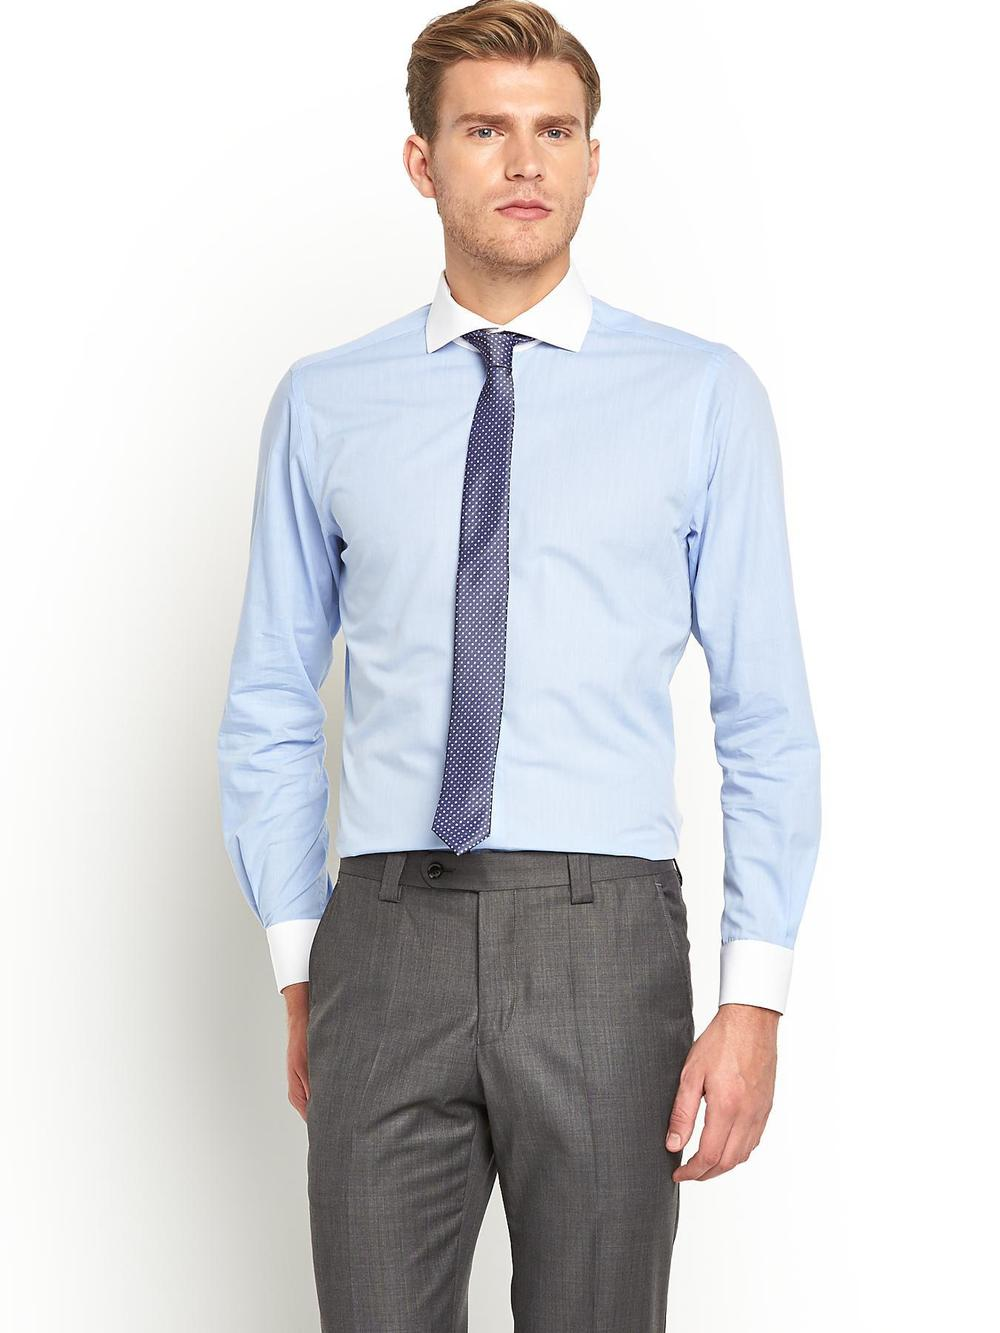 Rounded Collar Dress Shirts | Cutaway Collar | Stiff Collar Dress Shirt